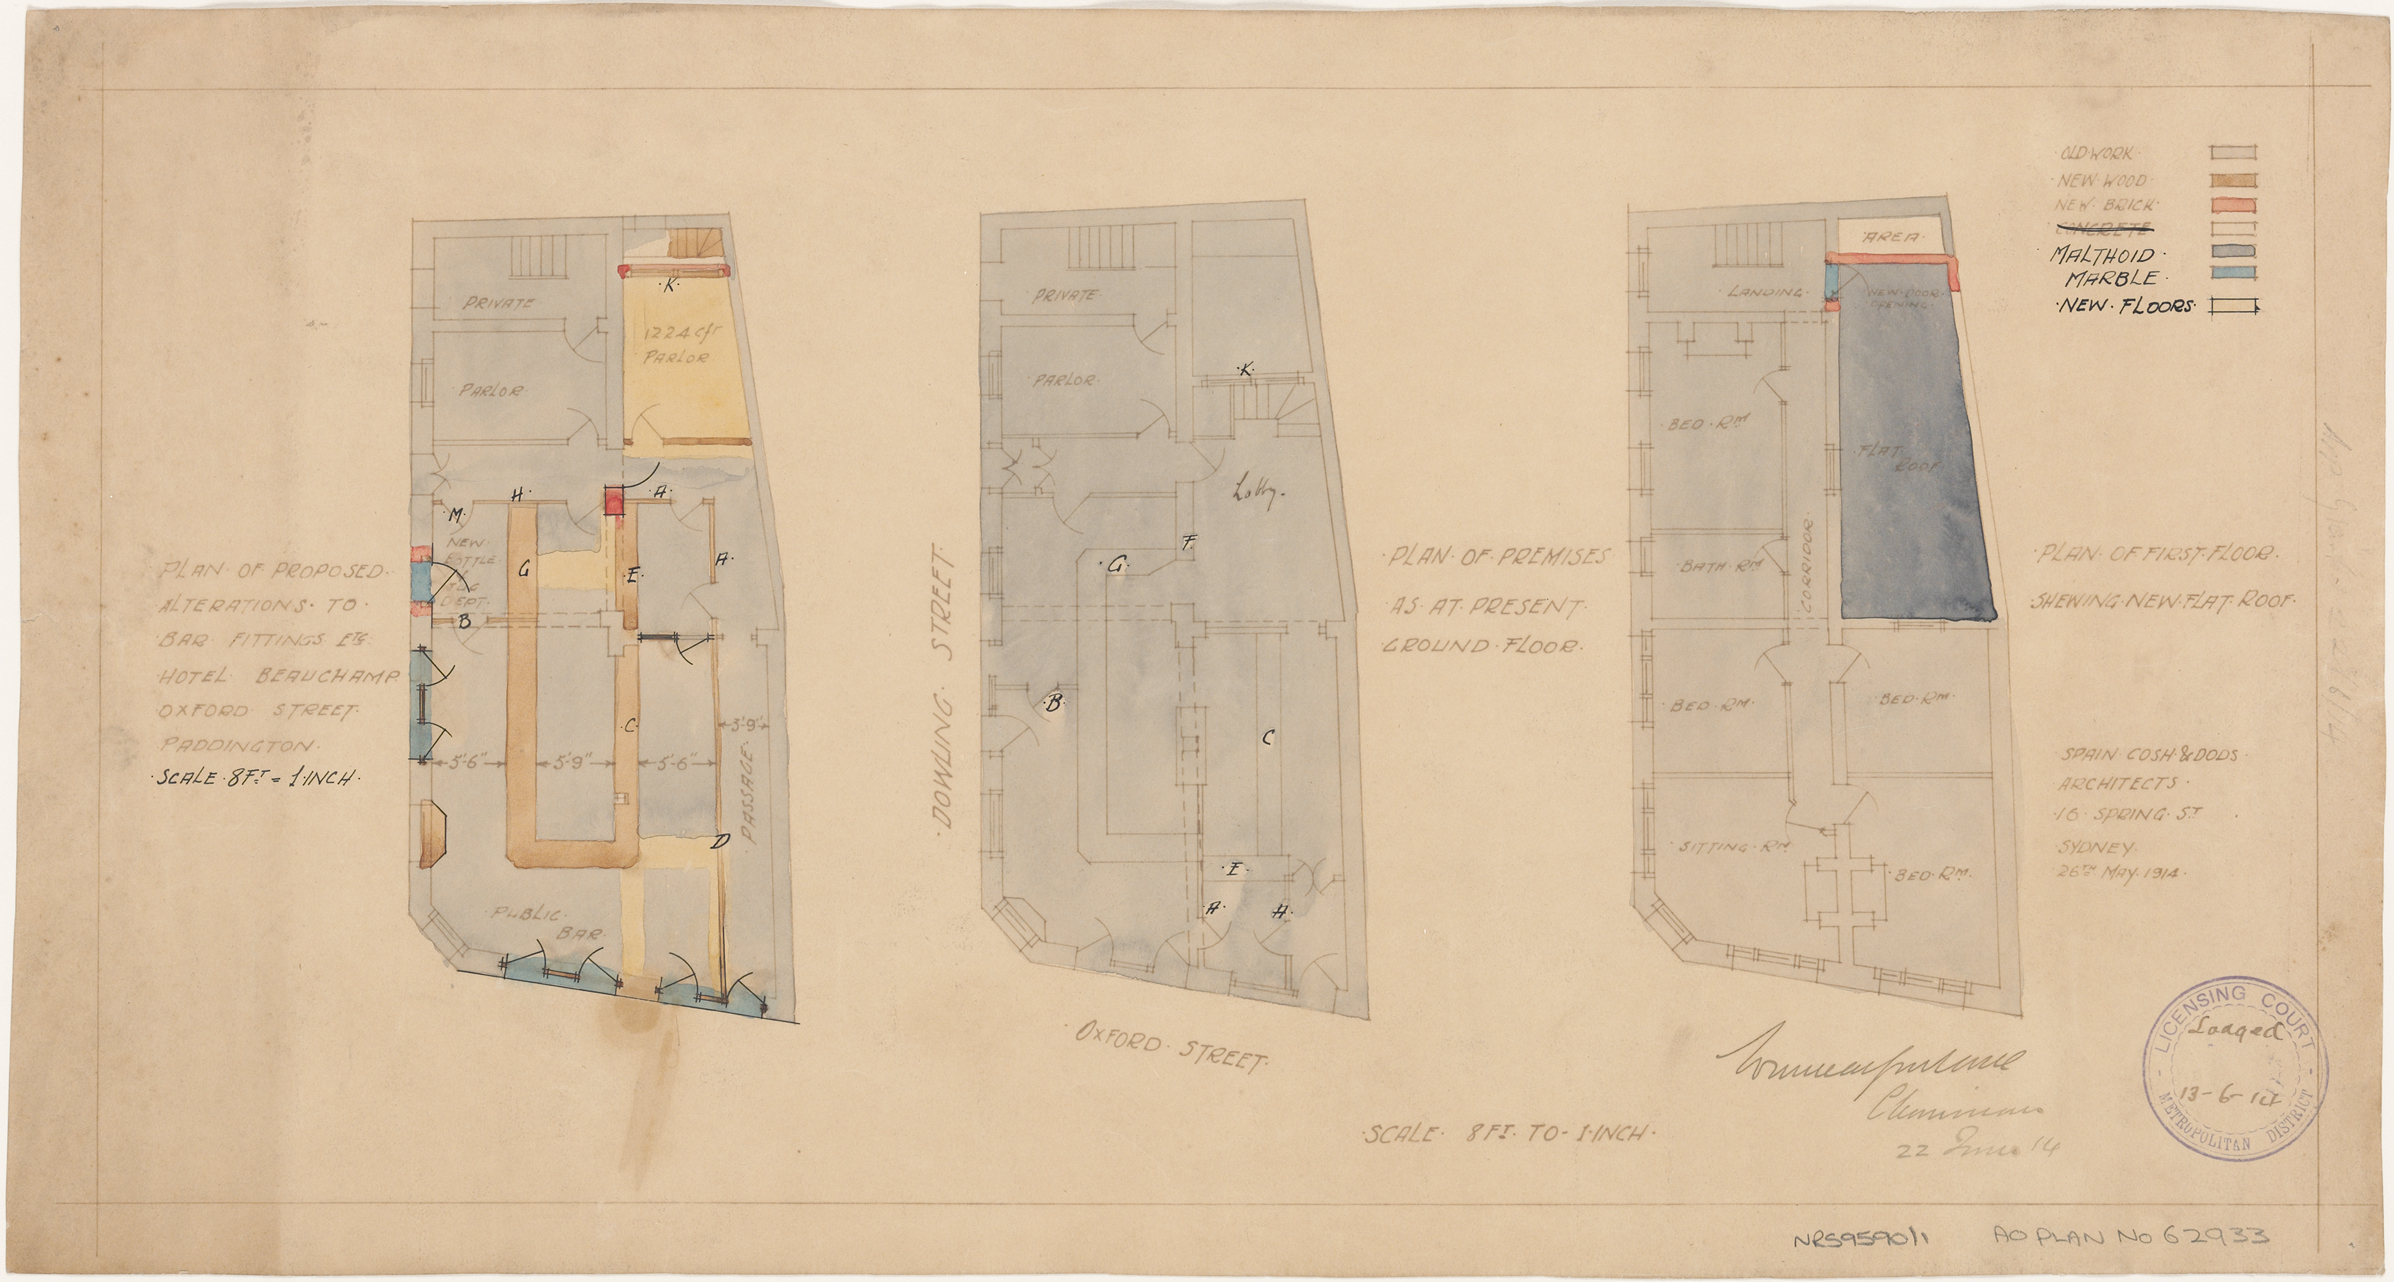 Beauchamp Hotel, Oxford and Dowling Streets, Paddington, Plan of proposed alterations to bar fittings, present ground floor plan, plan of first floor showing new flat roof, Architect Spain, Cosh and Dods, 16 Spring Street, Sydney, Lodged licensing court 13 June 1914, application granted 22 June 1914